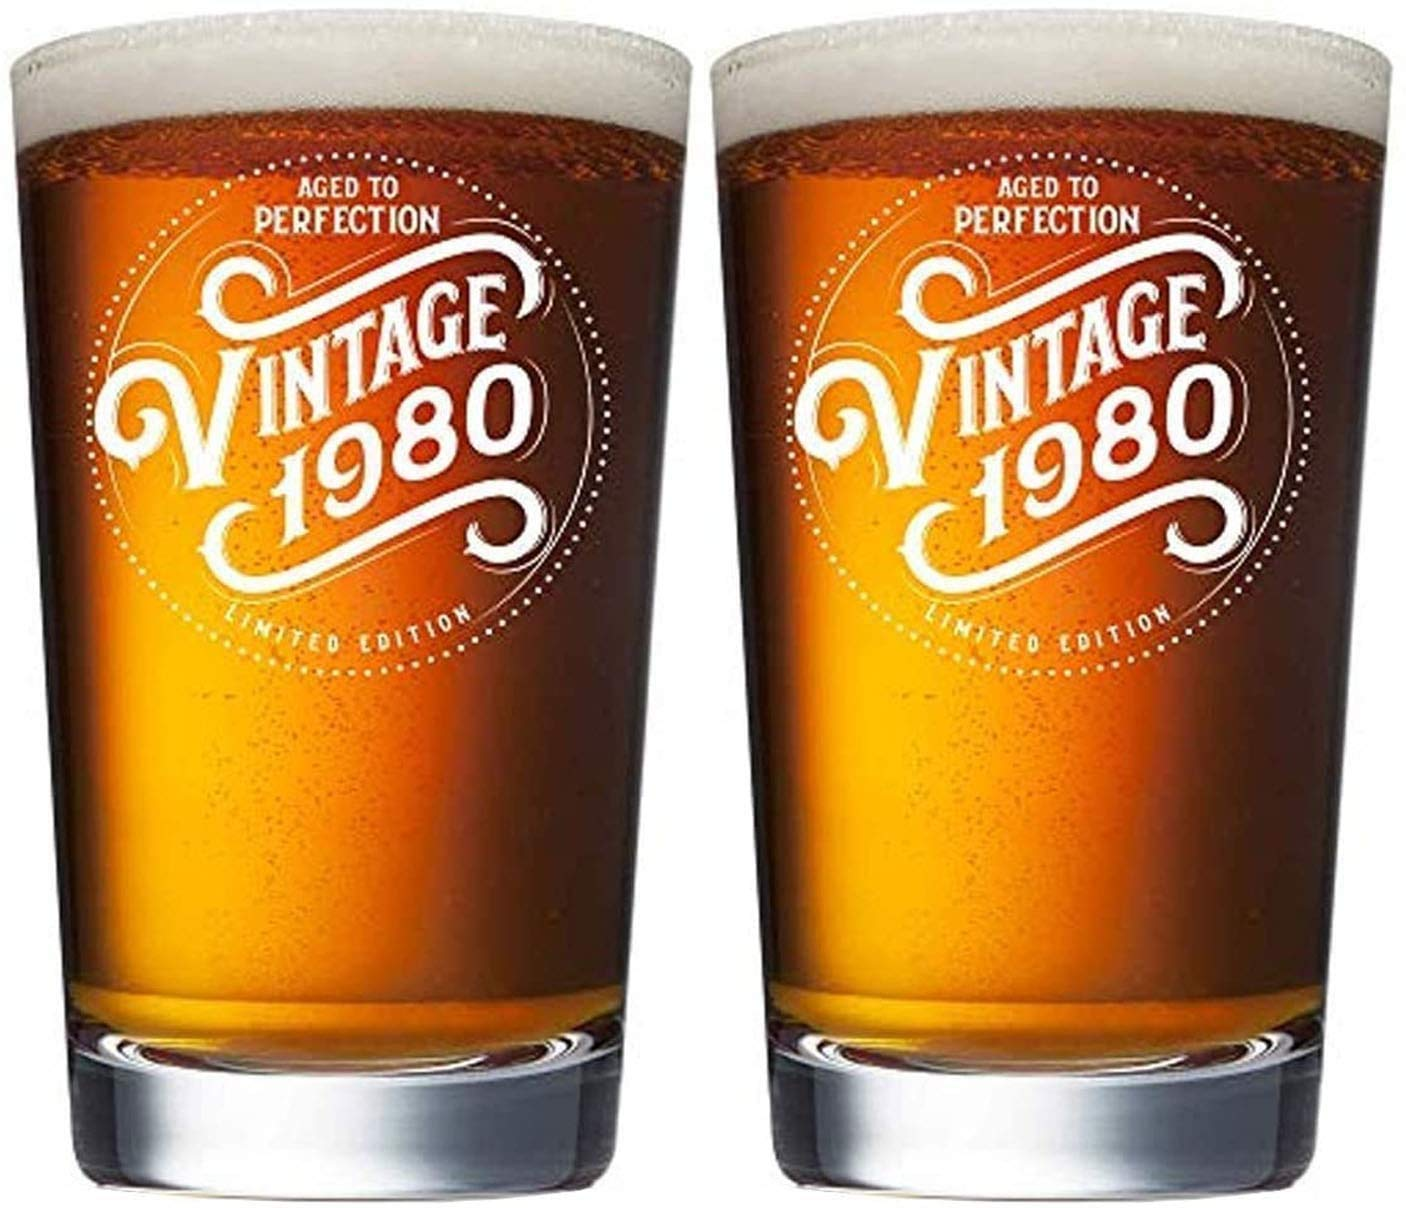 1980 40th Birthday Gifts for Men and Women Beer Glass - 16 oz (SET OF 2) Finny Vintage 40 Year Old Pint Glasses